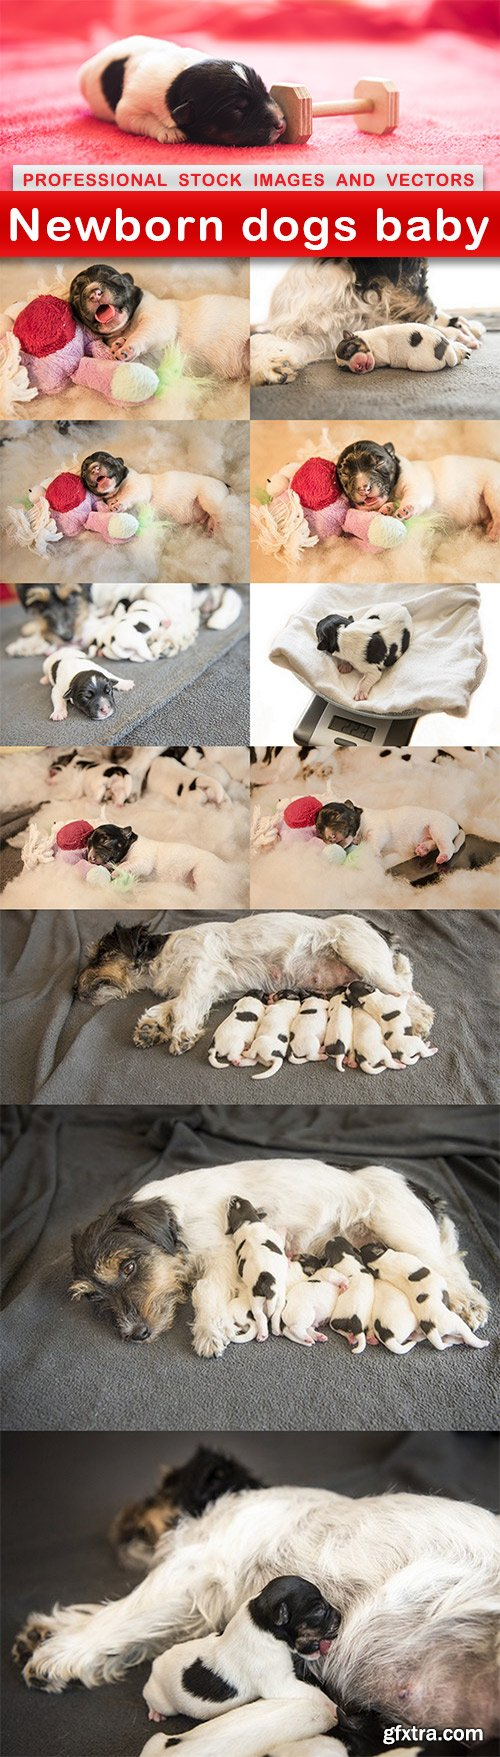 Newborn dogs baby - 12 UHQ JPEG